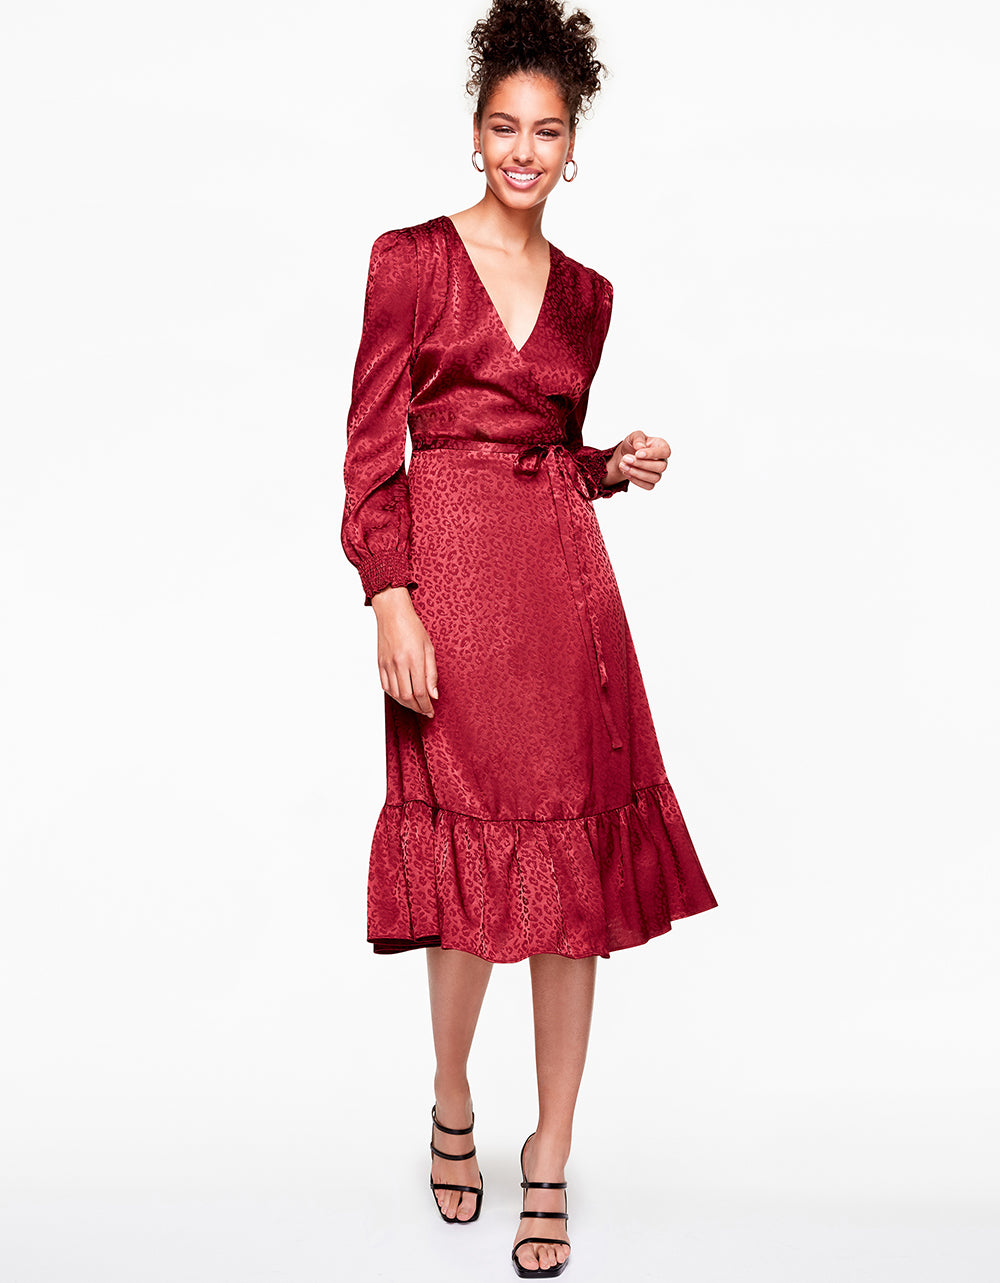 Betsey Johnson ALL WRAPPED UP DRESS in WINE RED